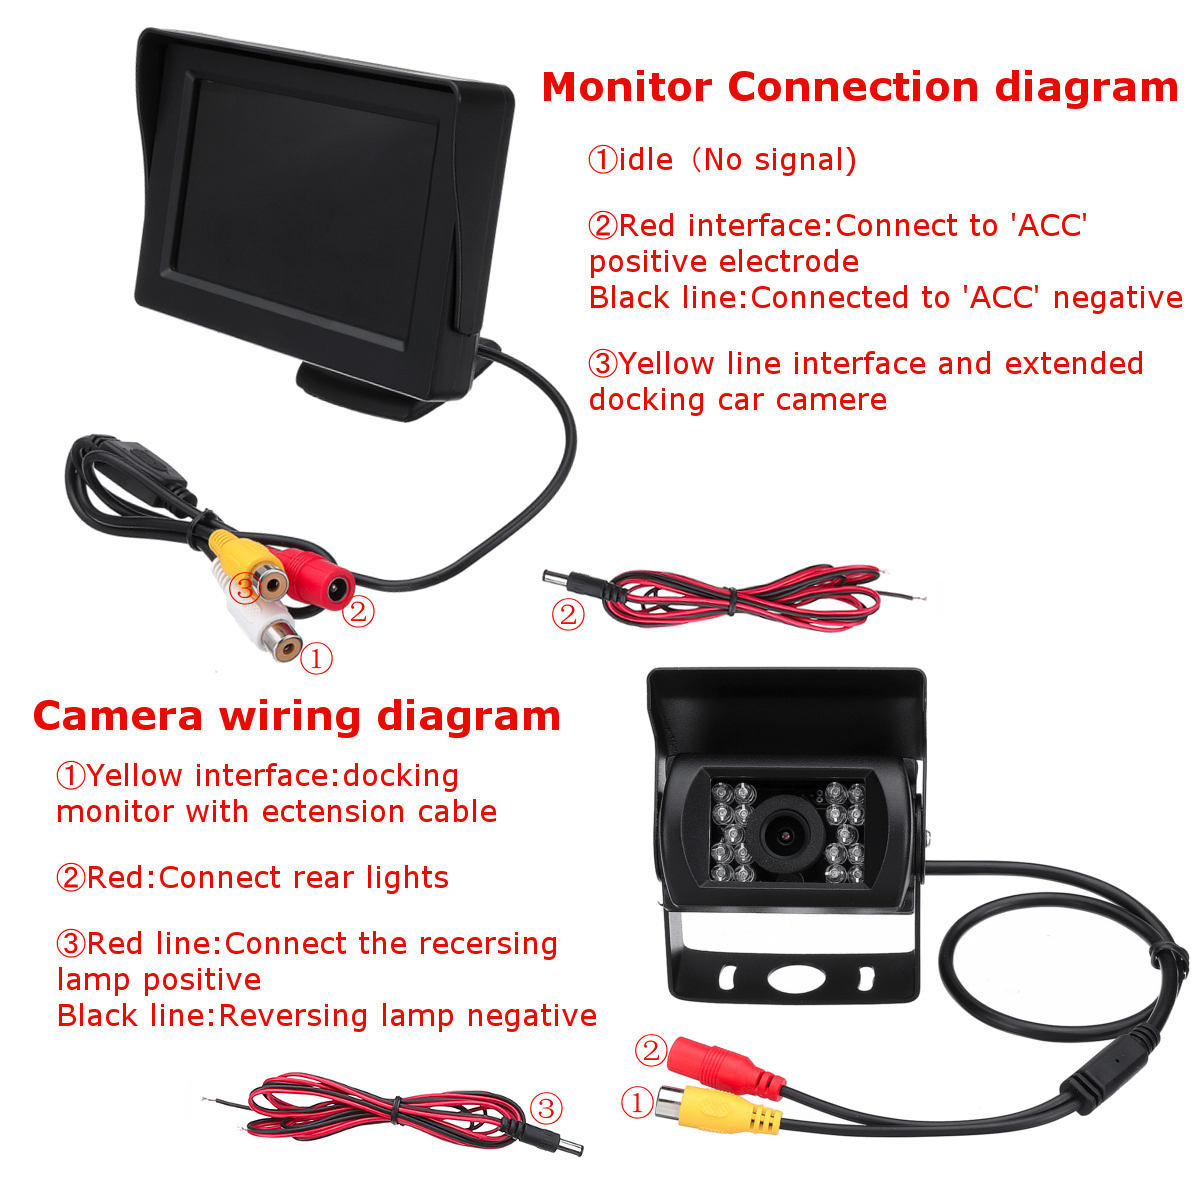 2.4G Wireless Car Rear View Camera+4.3 Inch Monitor For 12-24V Truck - Tft Lcd Monitor Reversing Camera Wiring Diagram